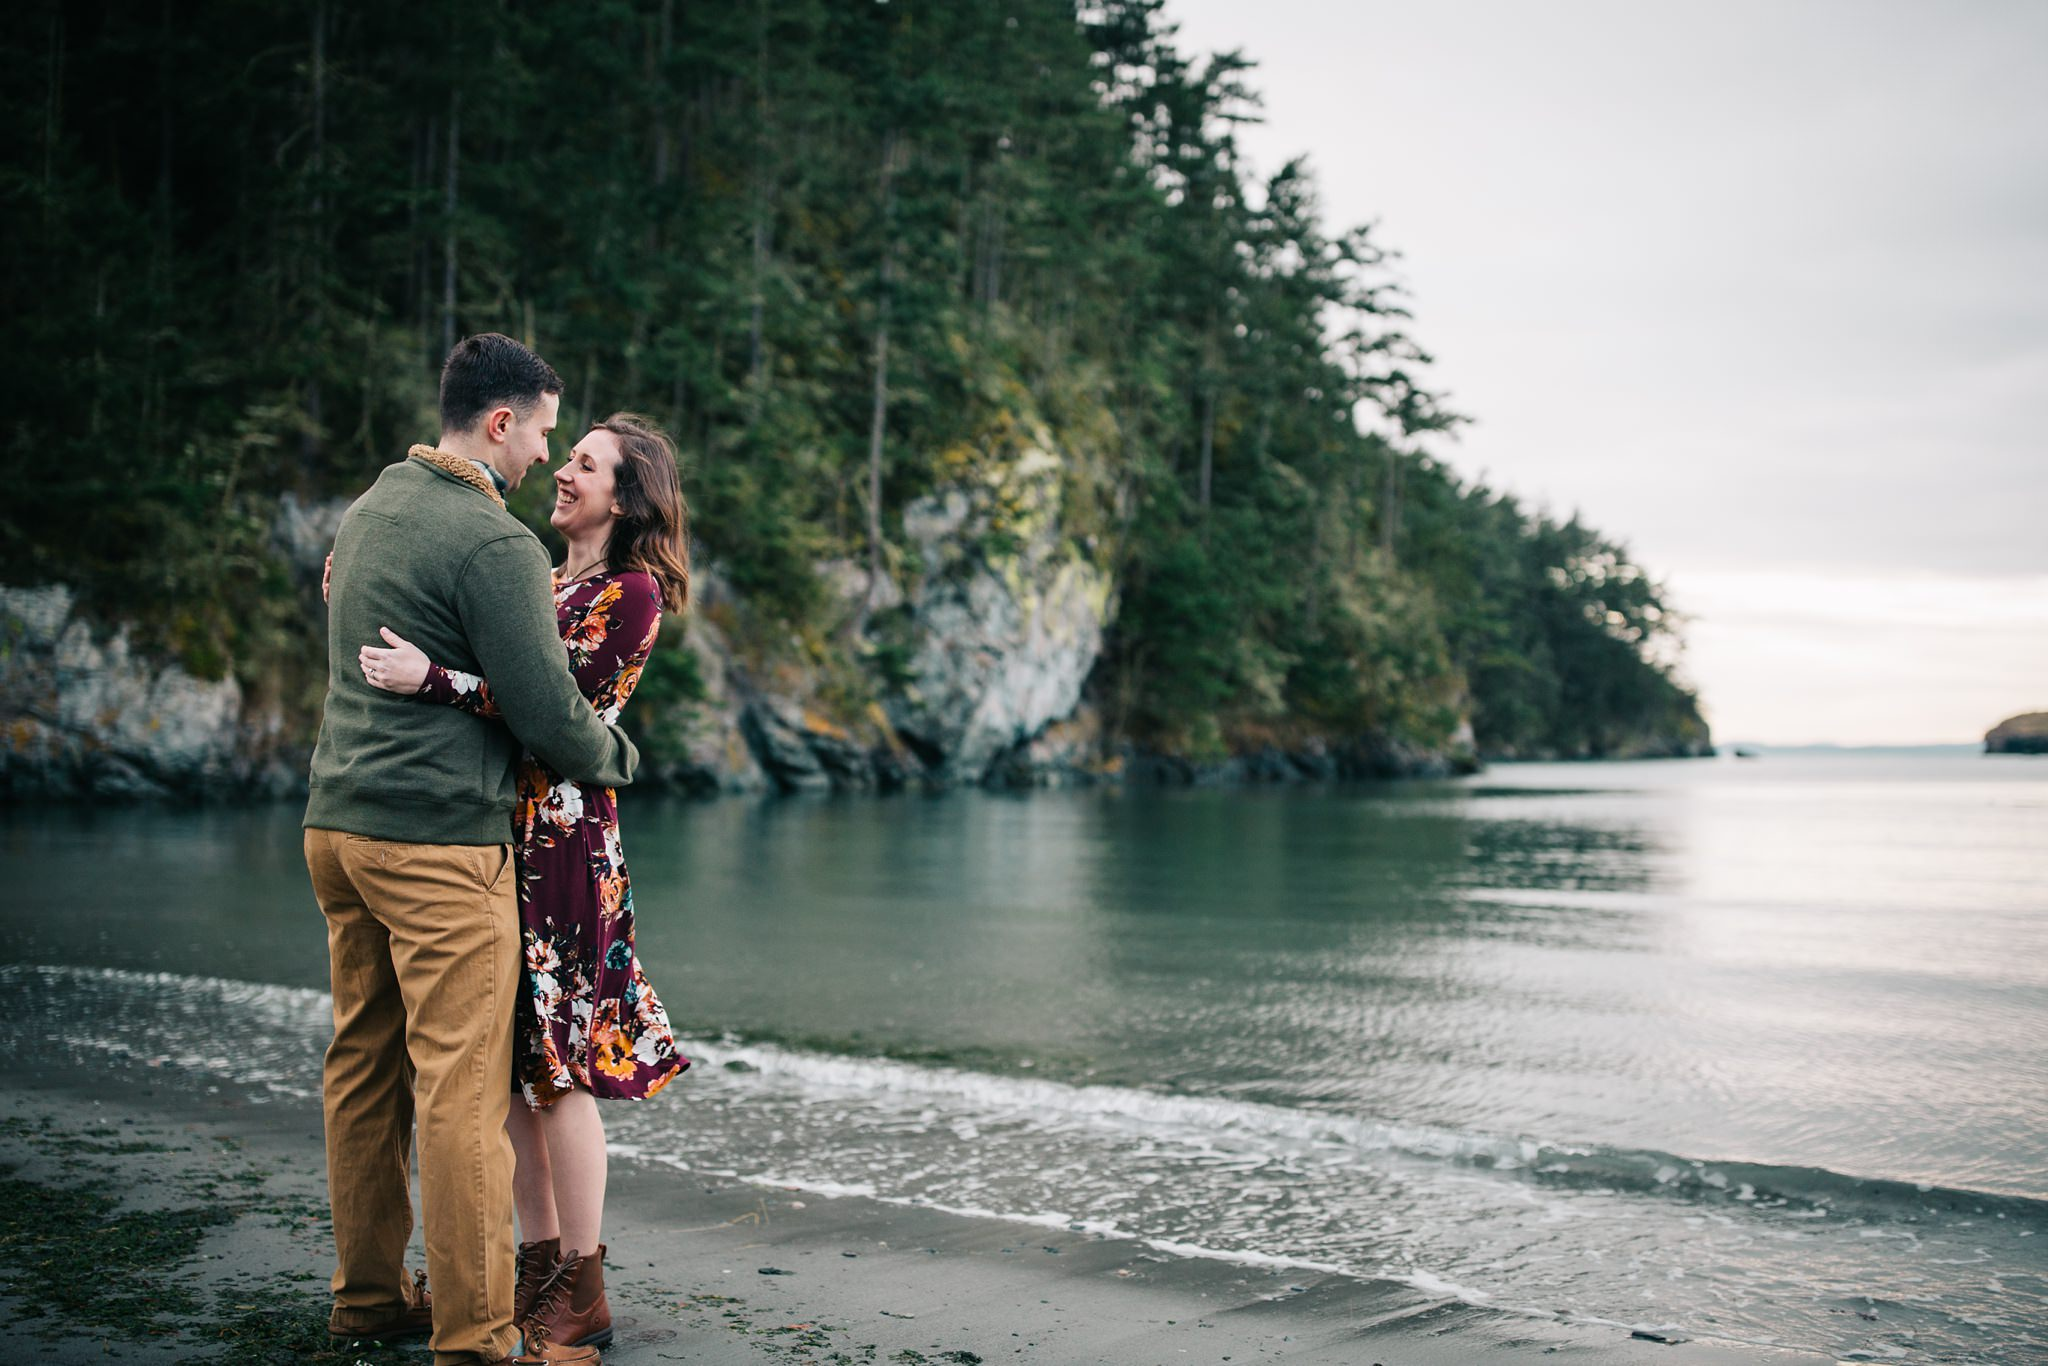 Whidbey-Island-Family-Photographer-Kara-Chappell-Photography_1754.jpg